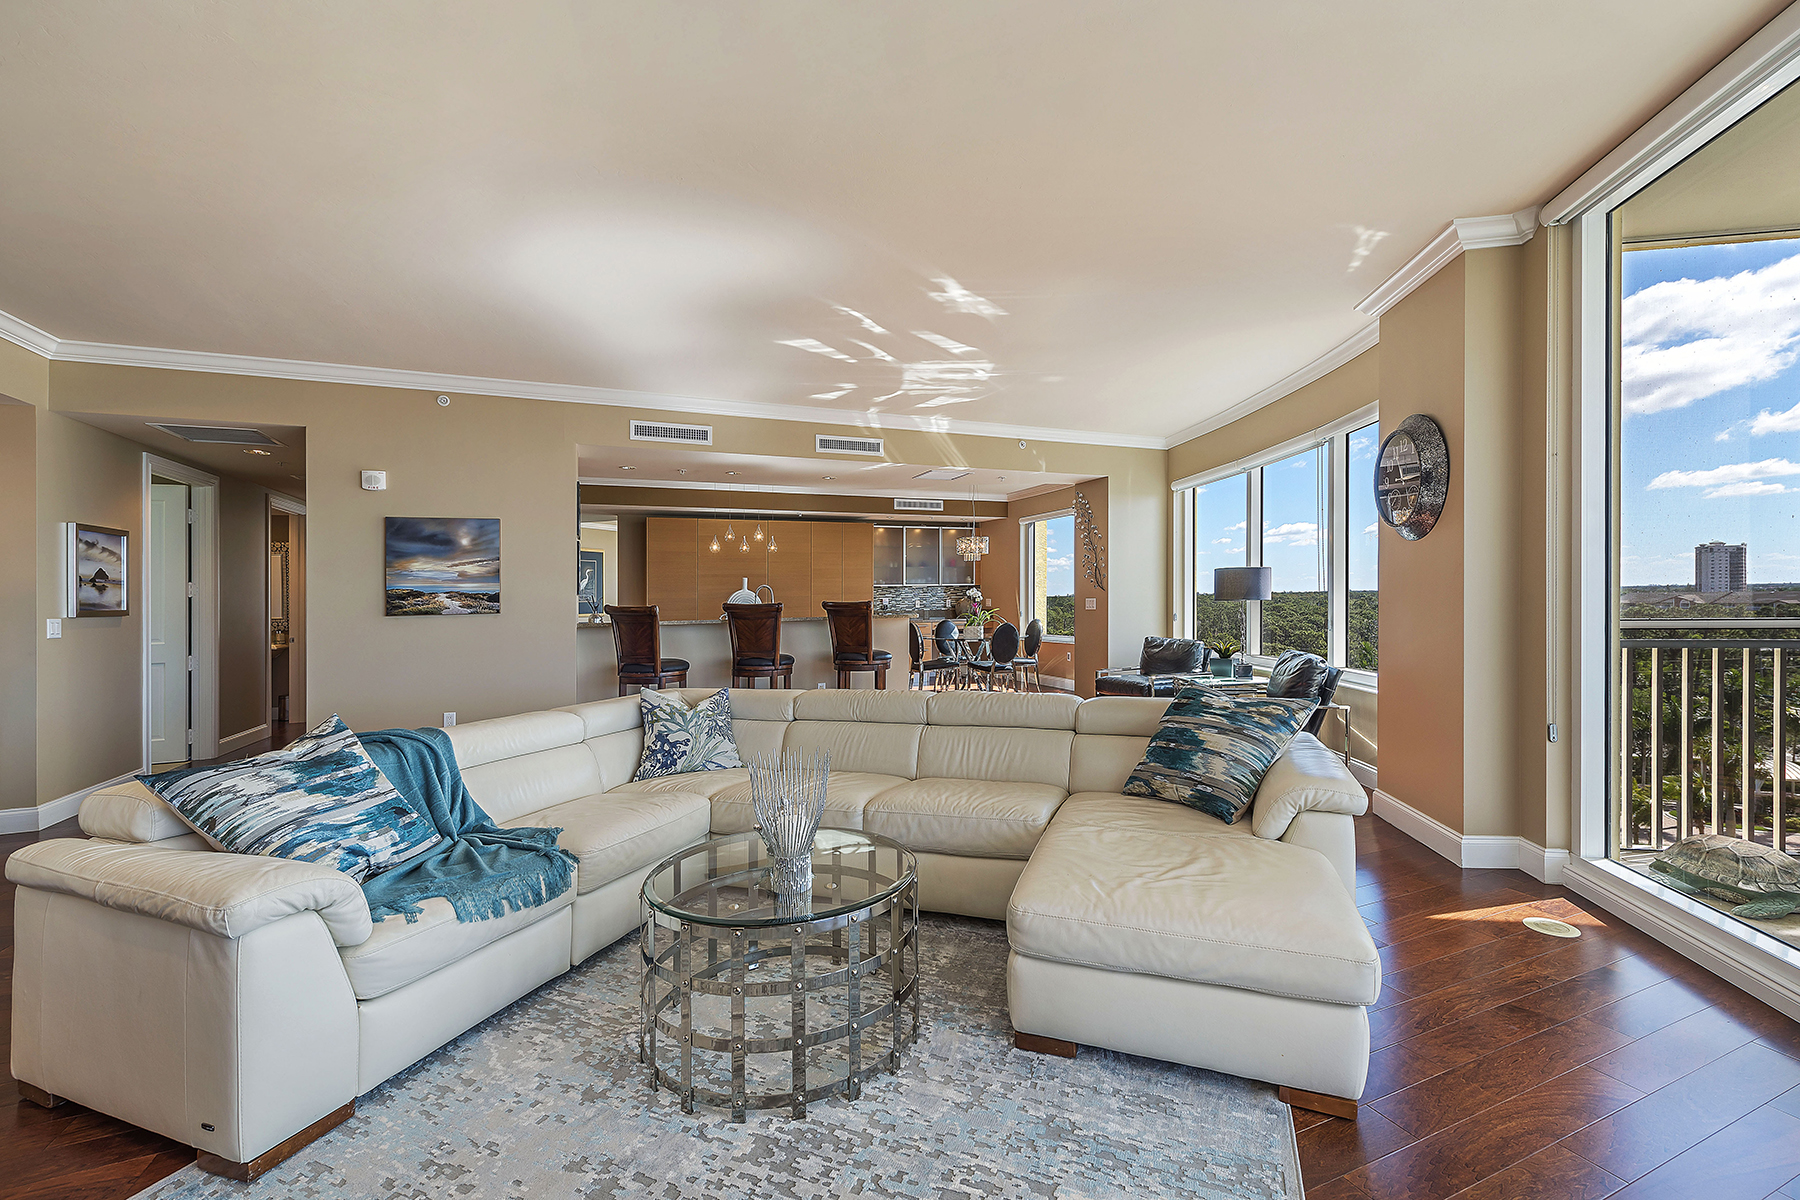 Condominium for Sale at Naples 13675 Vanderbilt Dr 705, Naples, Florida 34110 United States